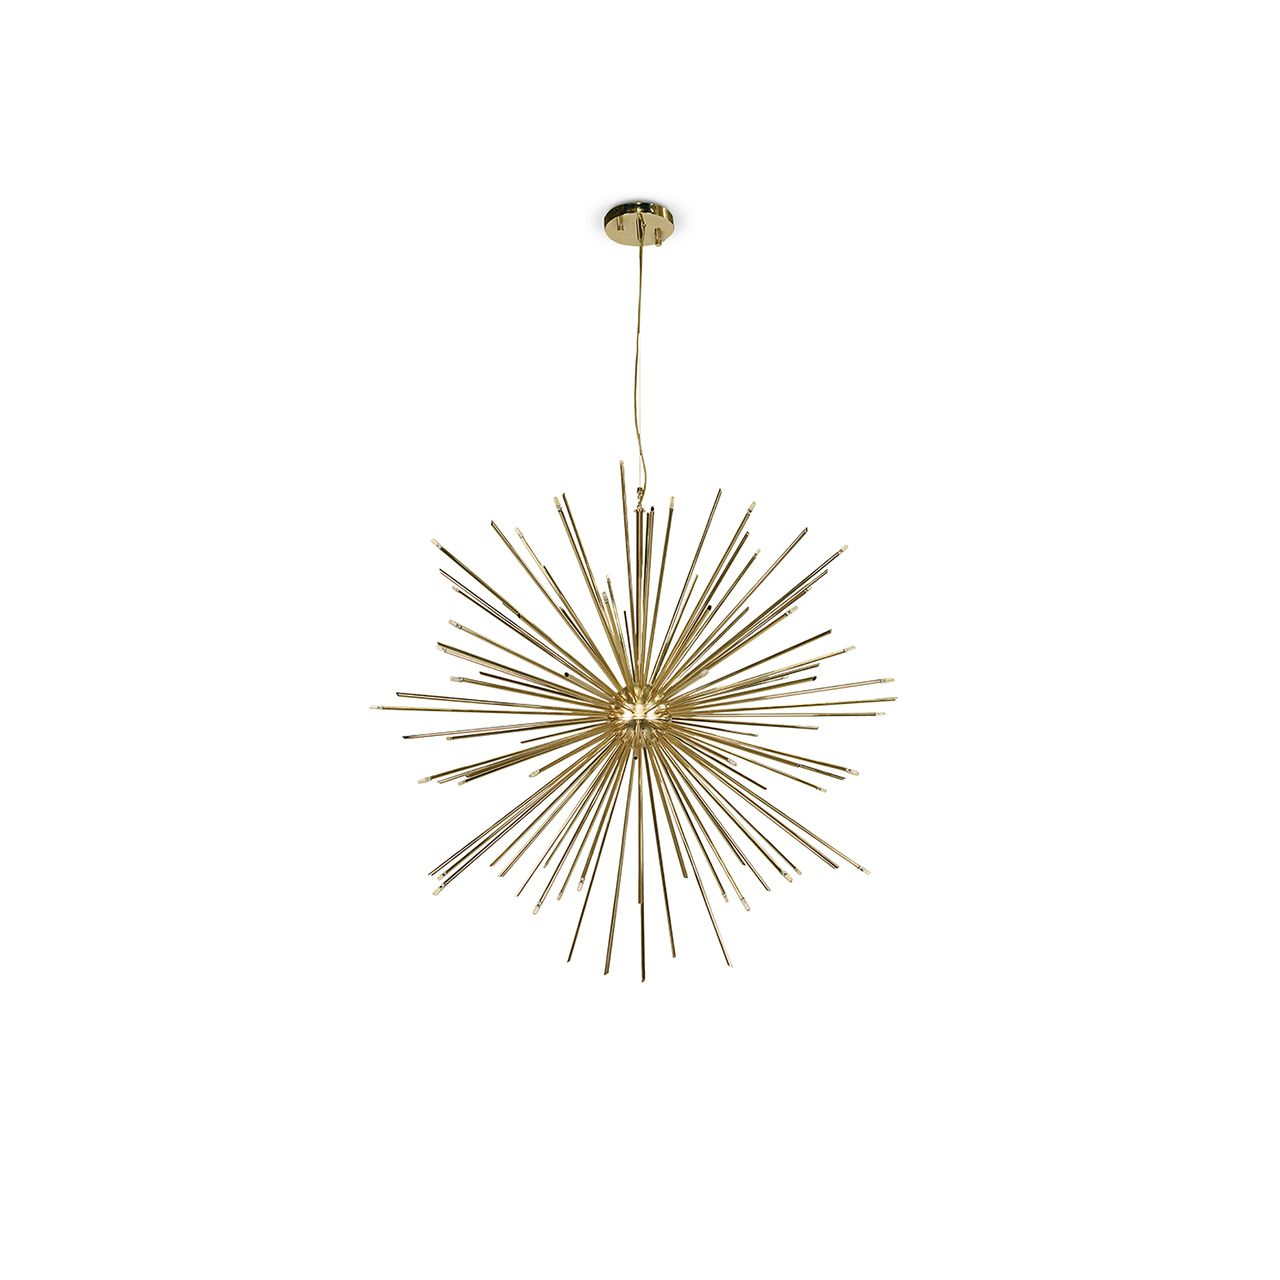 CANNONBALL SUSPENSION LIGHT